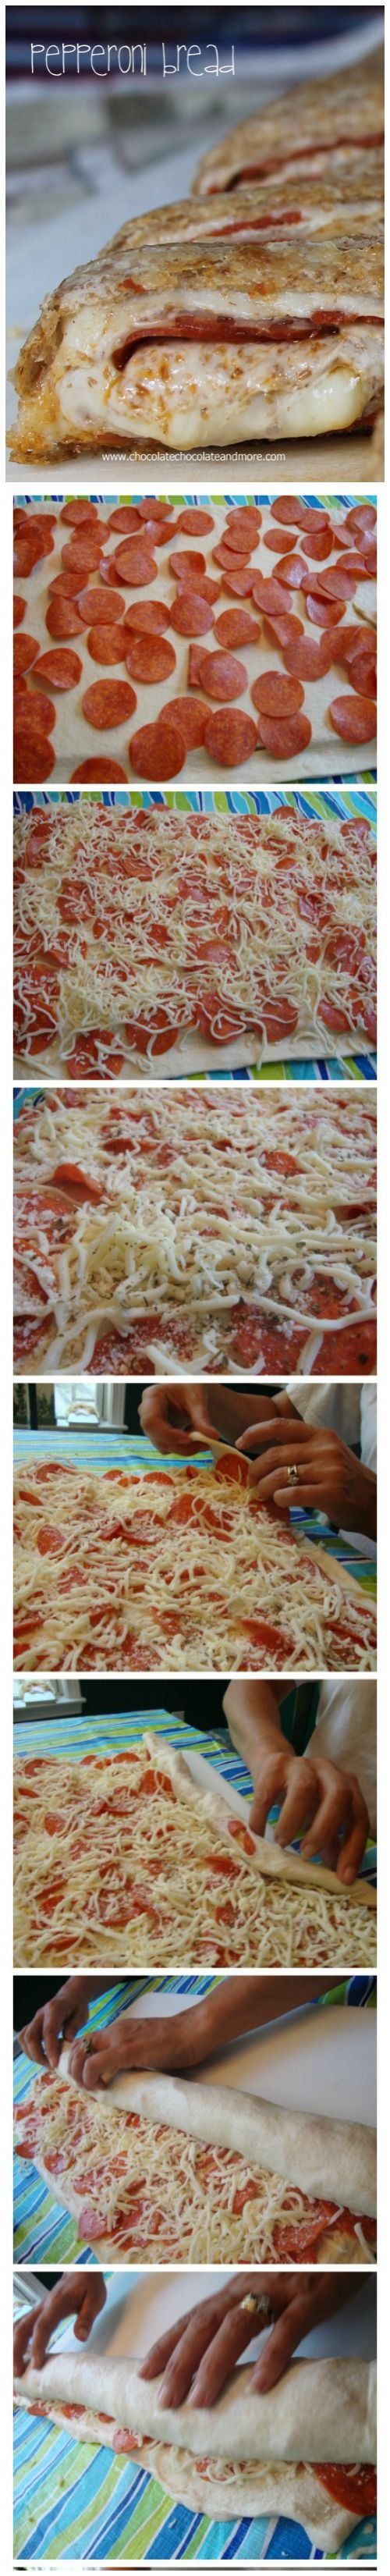 Pepperoni Bread-Easy to make, great for a party, a snack or anytime!